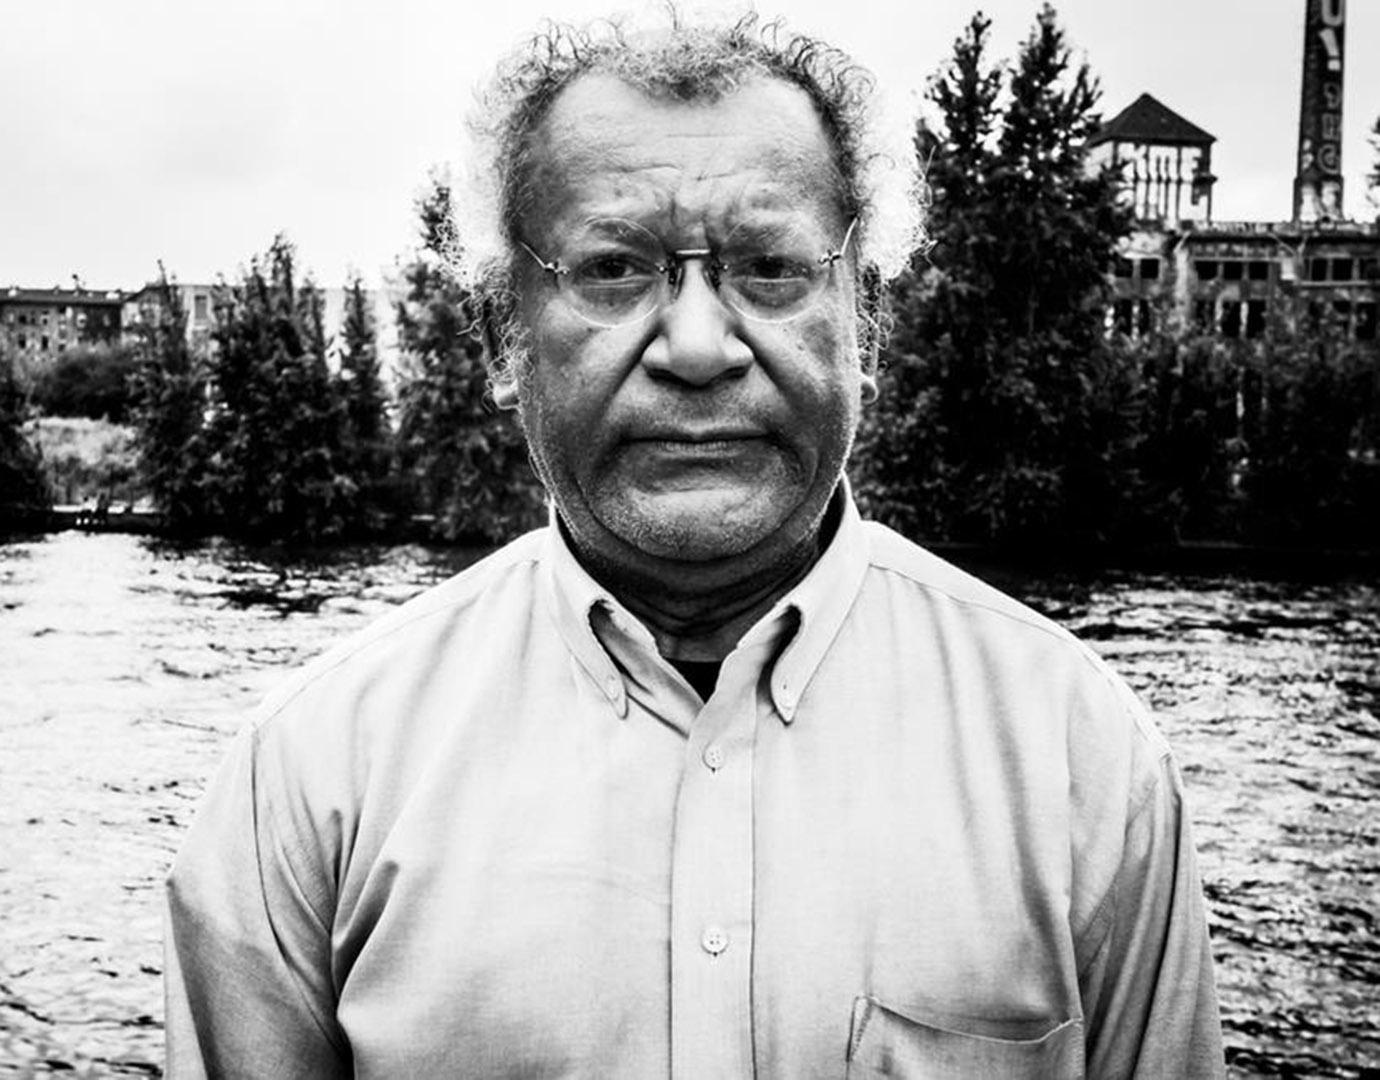 Anthony Braxton to play at Cafe Oto in 2018 - The Wire